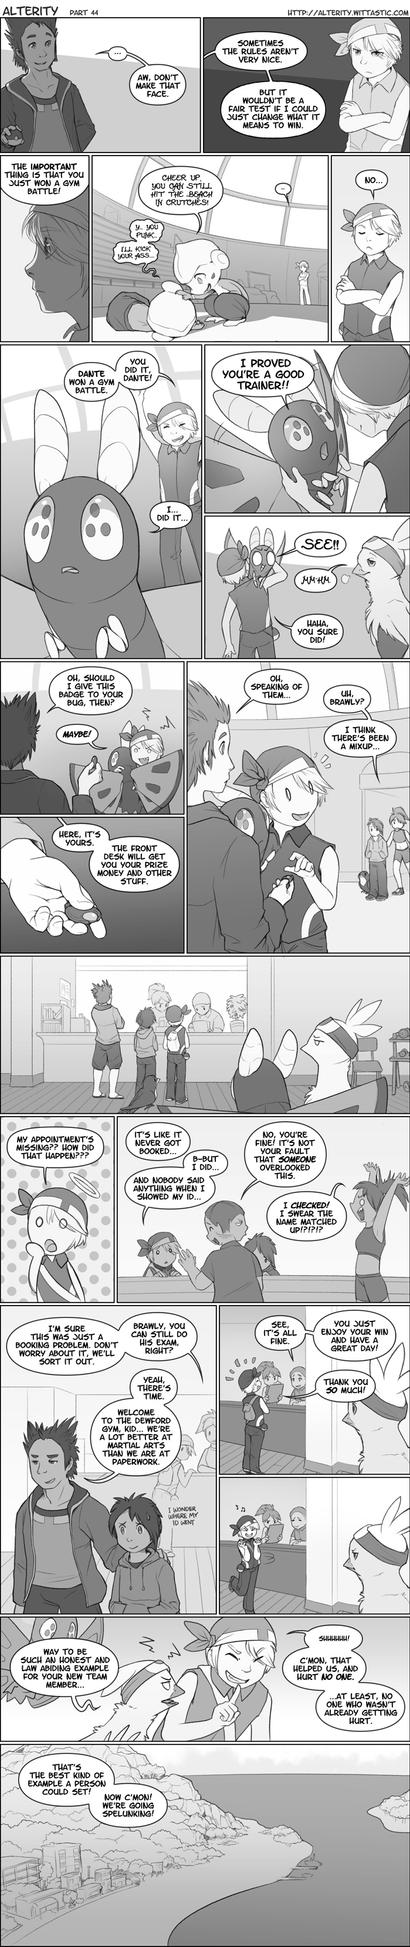 Alterity Part 44 by Mewitti